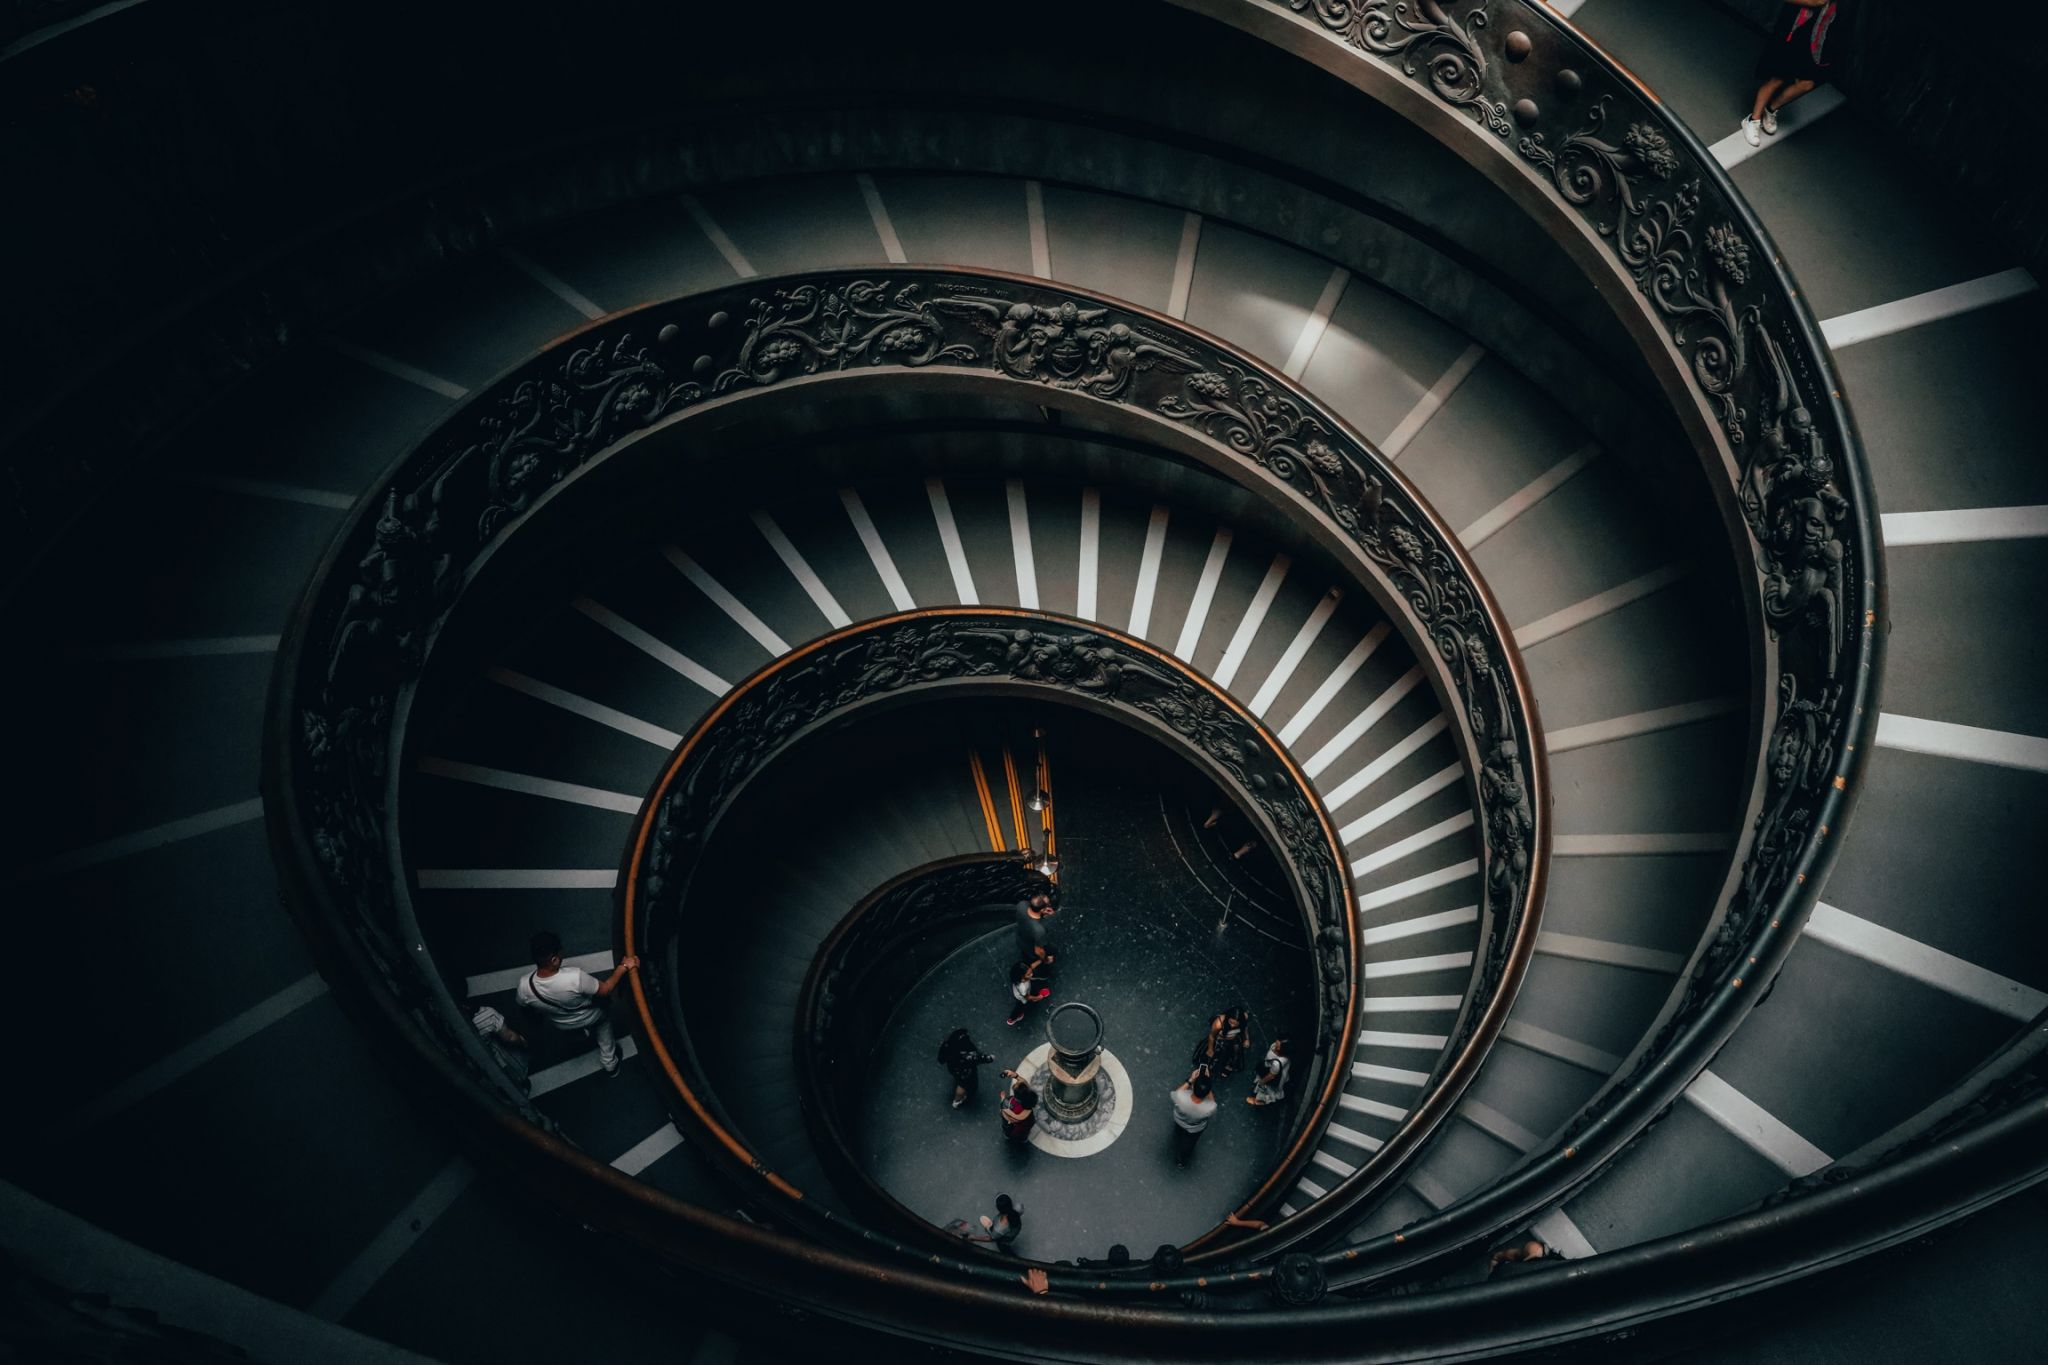 Spiral Staircase at Vatican Museum, Rome, Italy